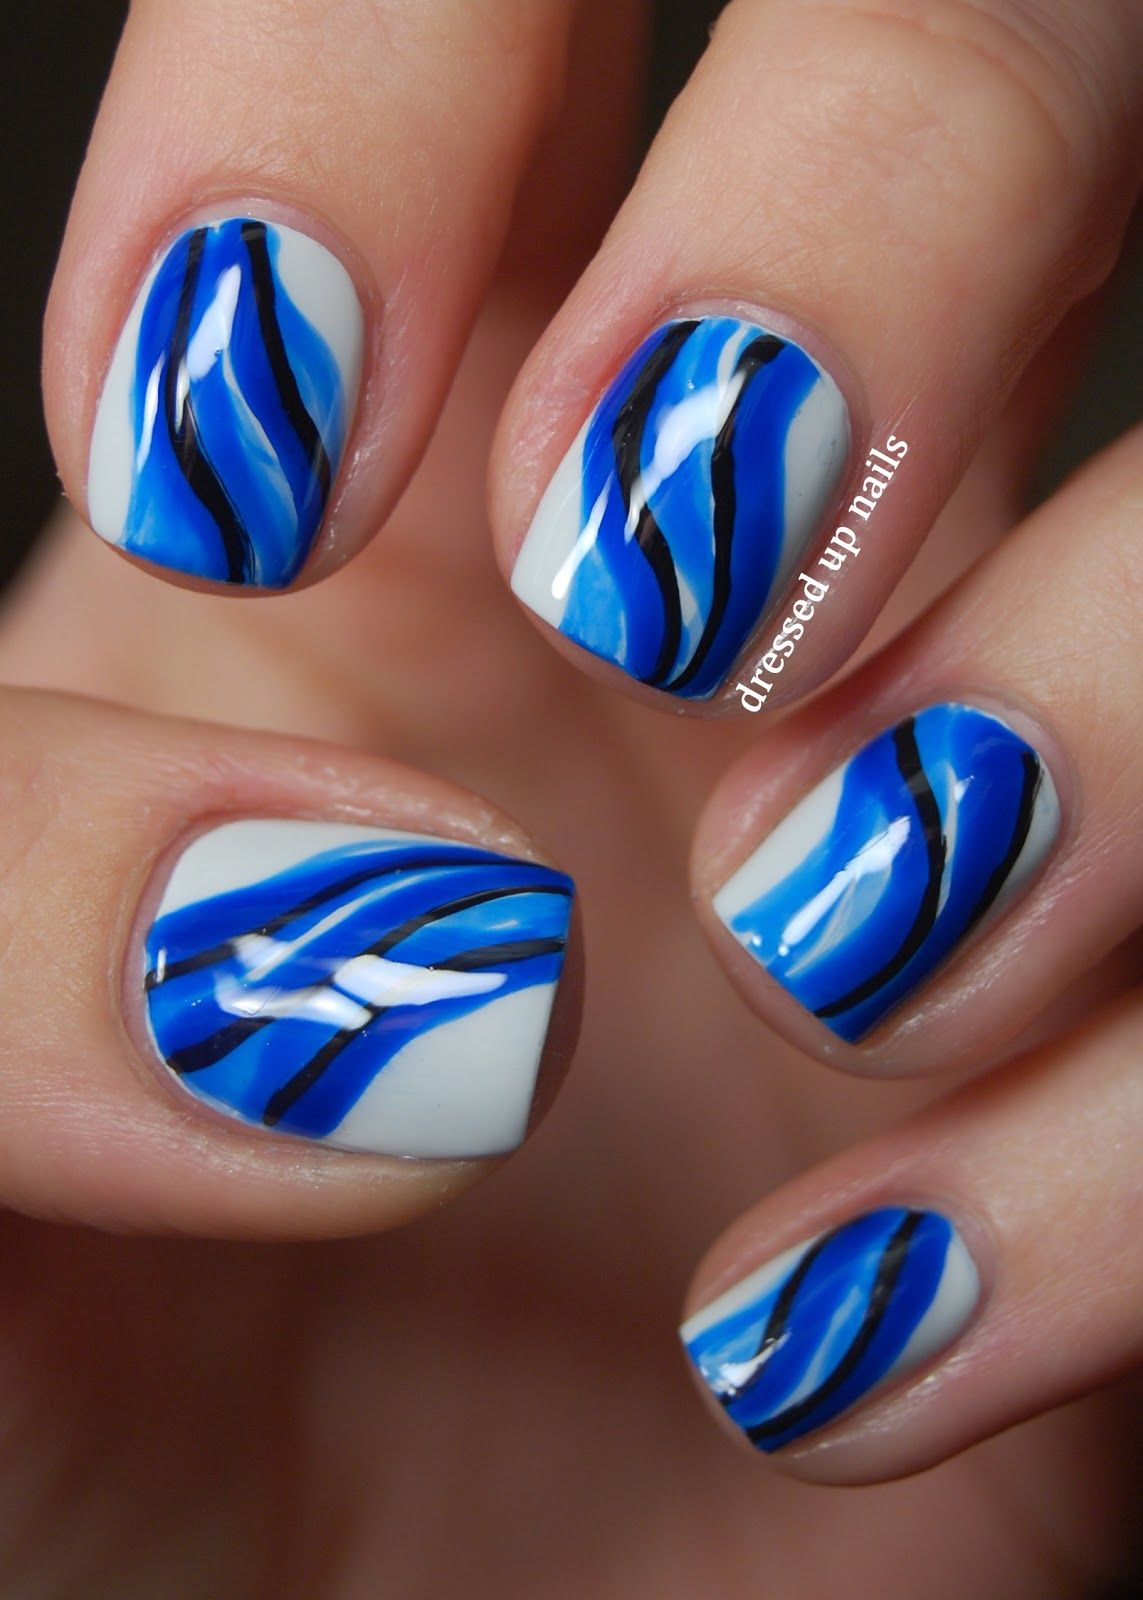 Today\'s Daily Nail Art is this water design by dressedupnails that ...